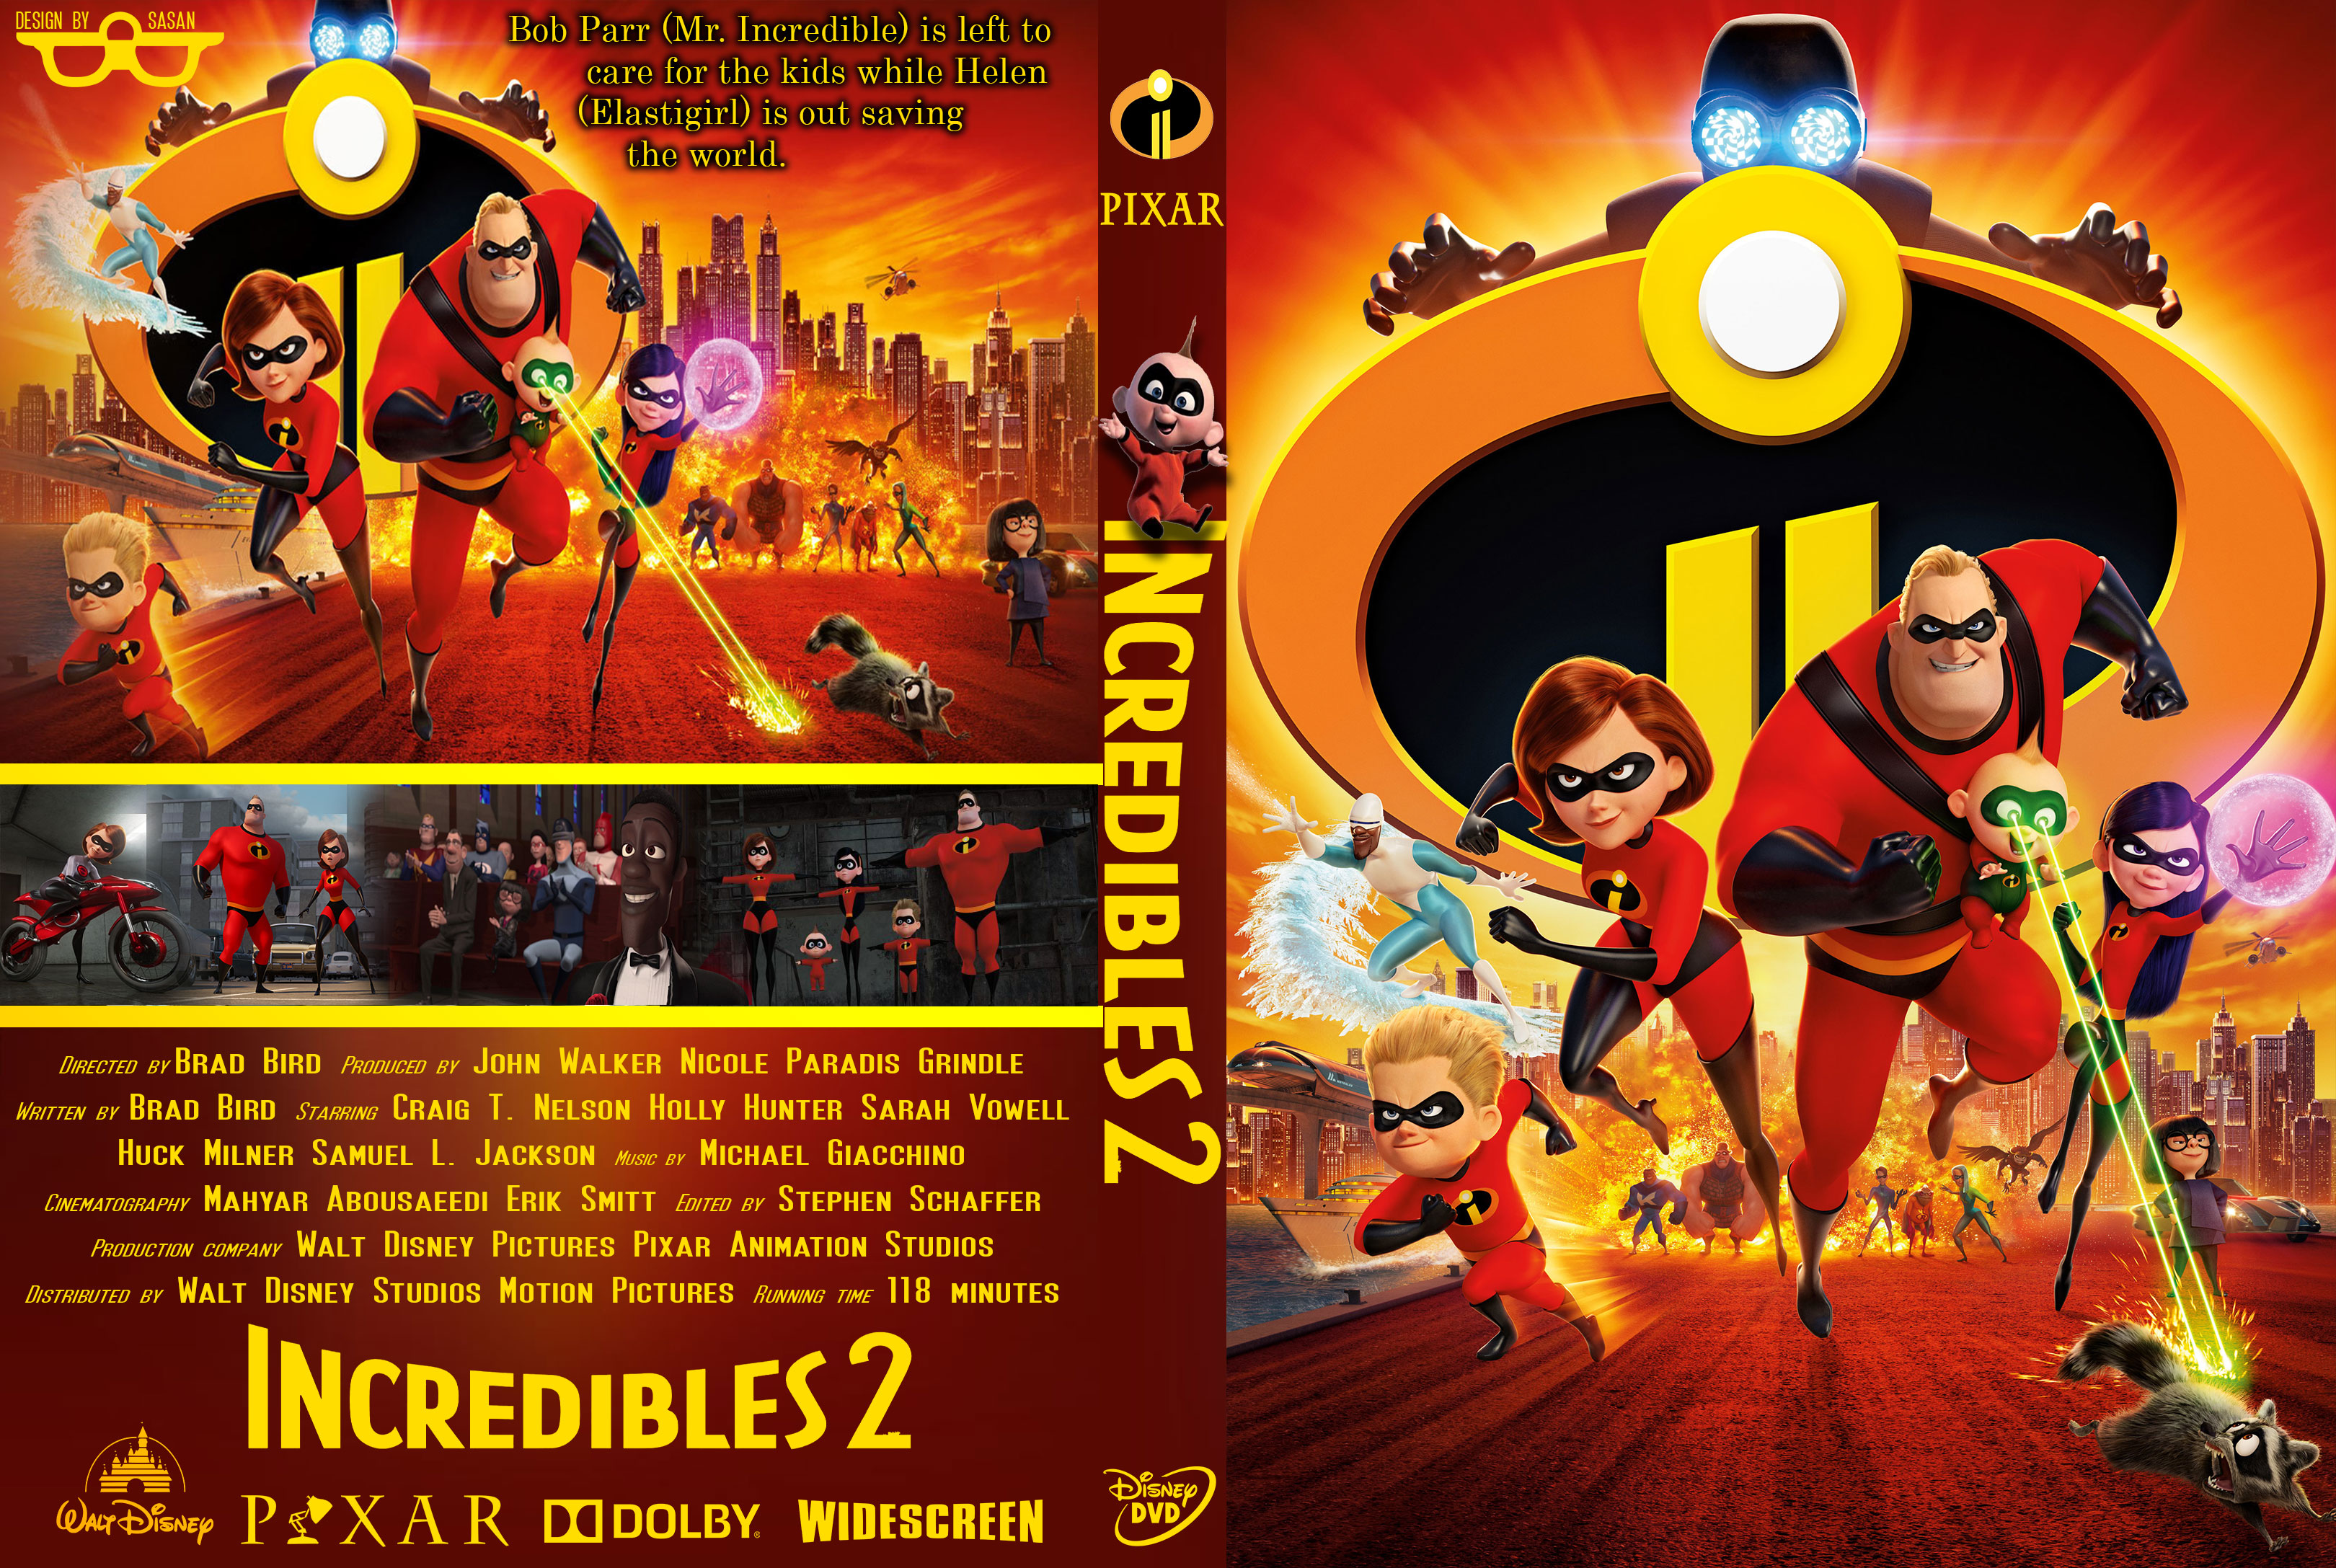 Incredibles 2 2018 R0 Custom DVD Cover Dvd Covers And